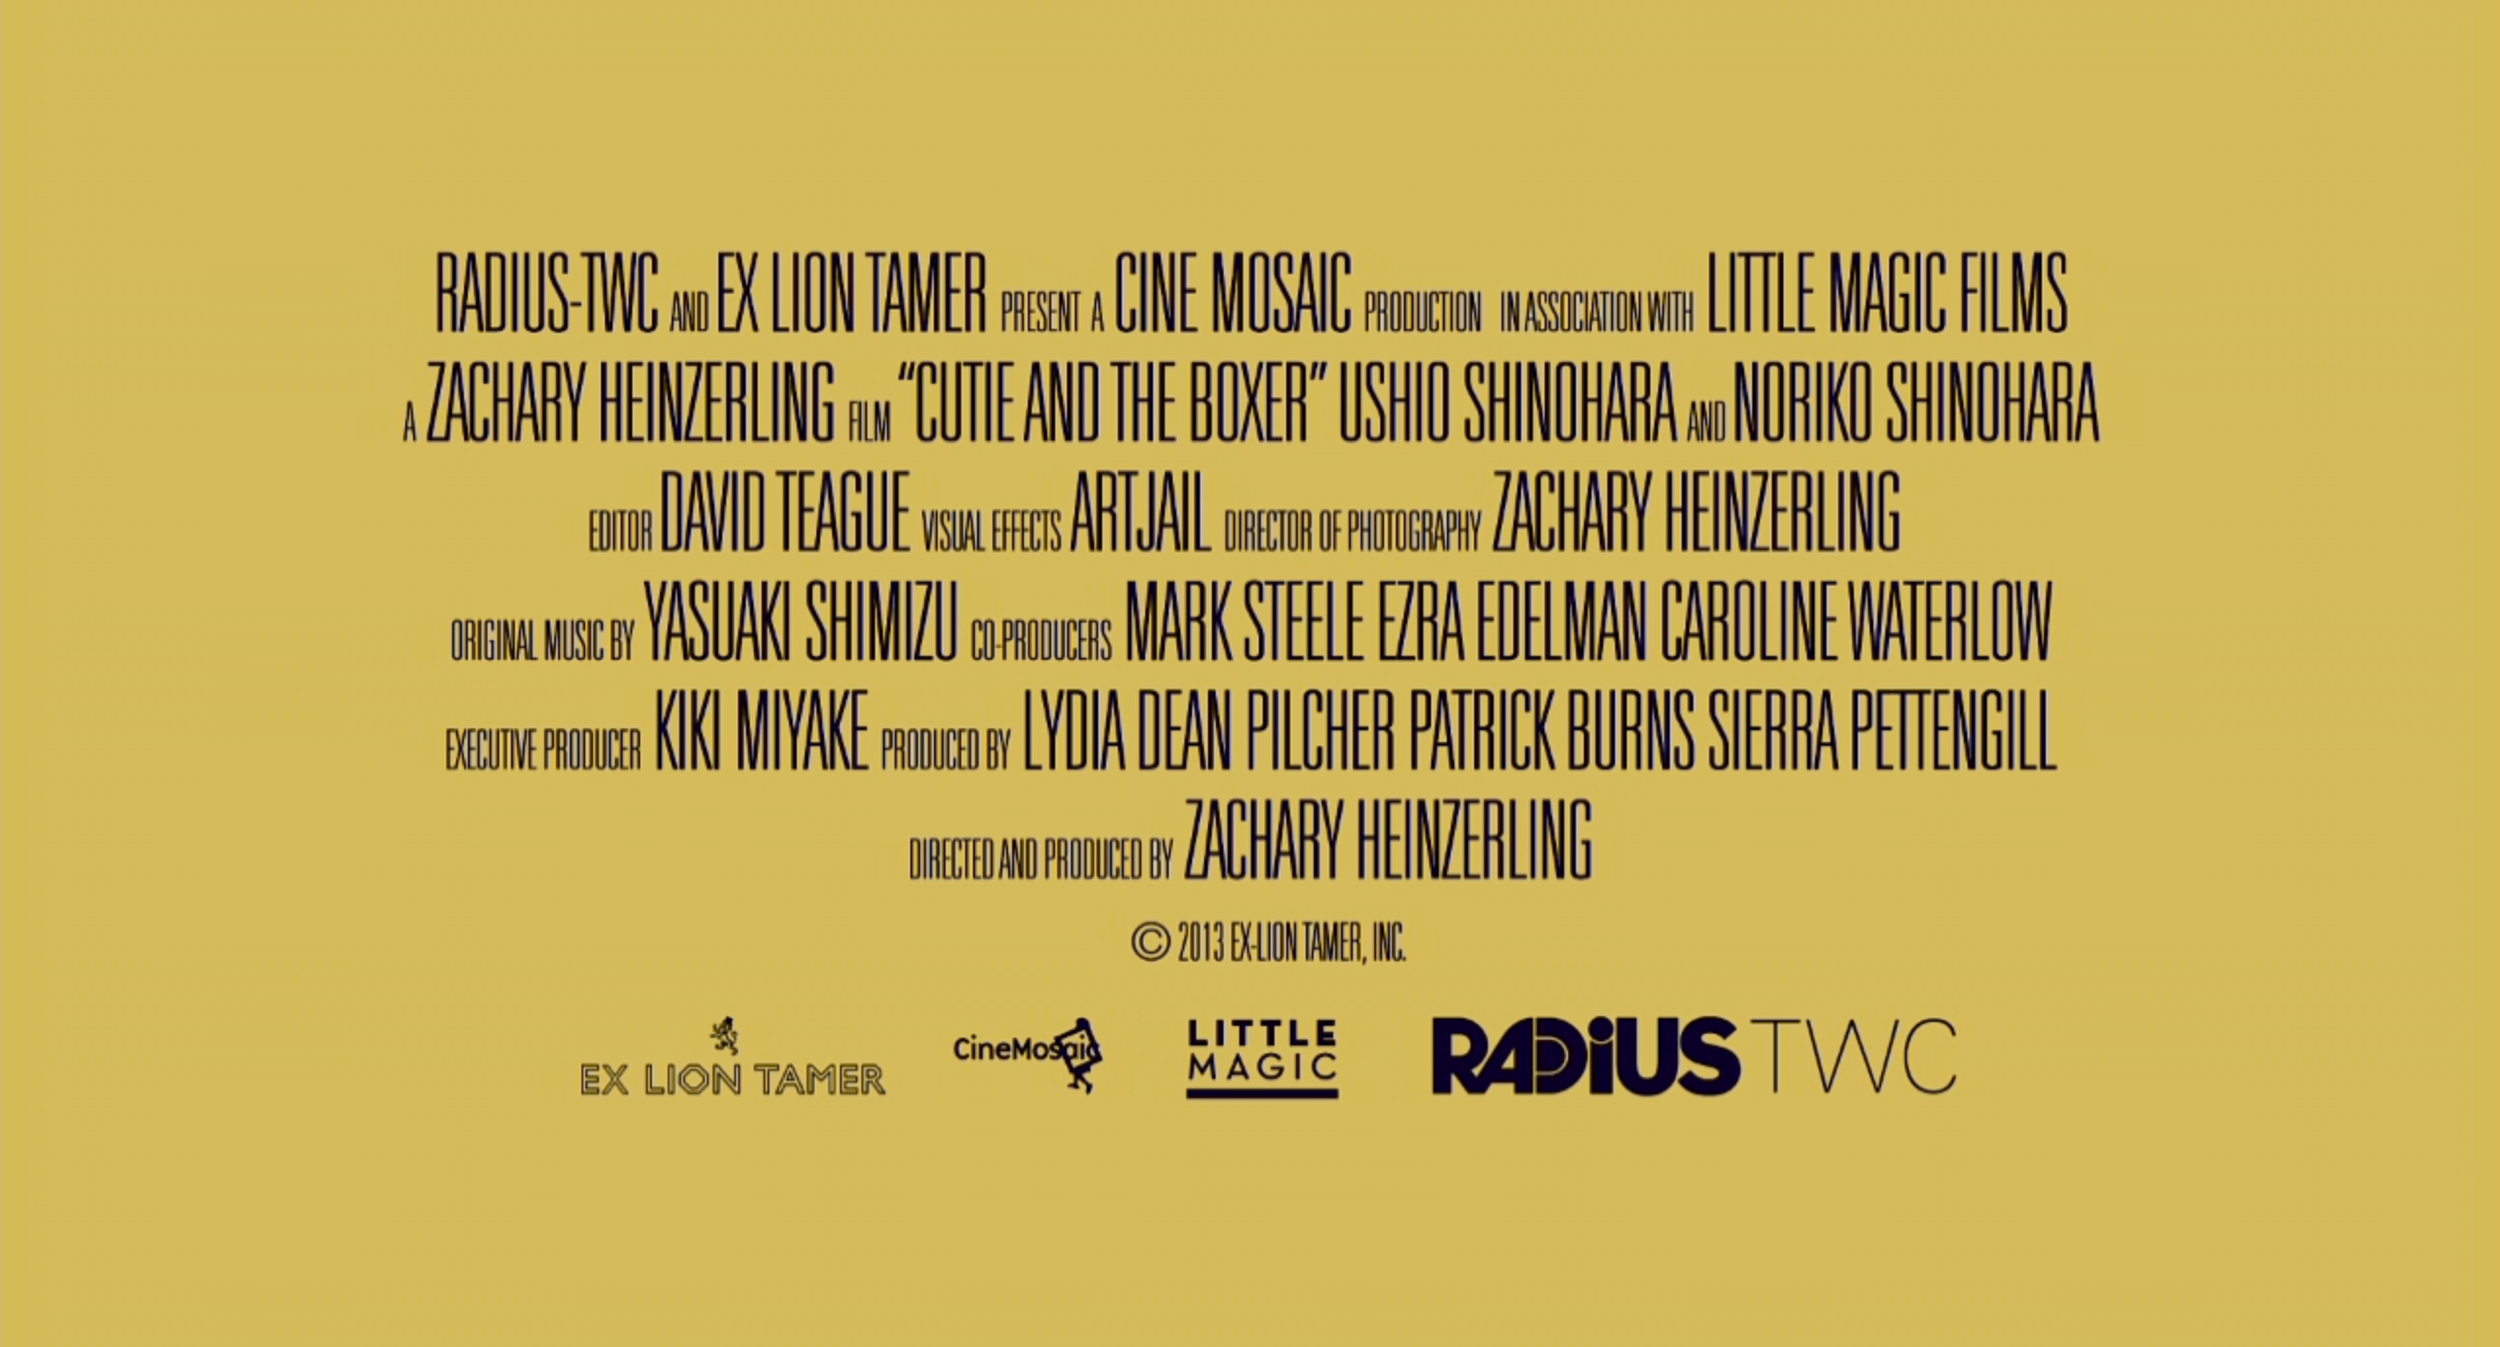 Visual Effects and Animation by Artjail. On the 'Cutie and the Boxer' trailer end credit card.